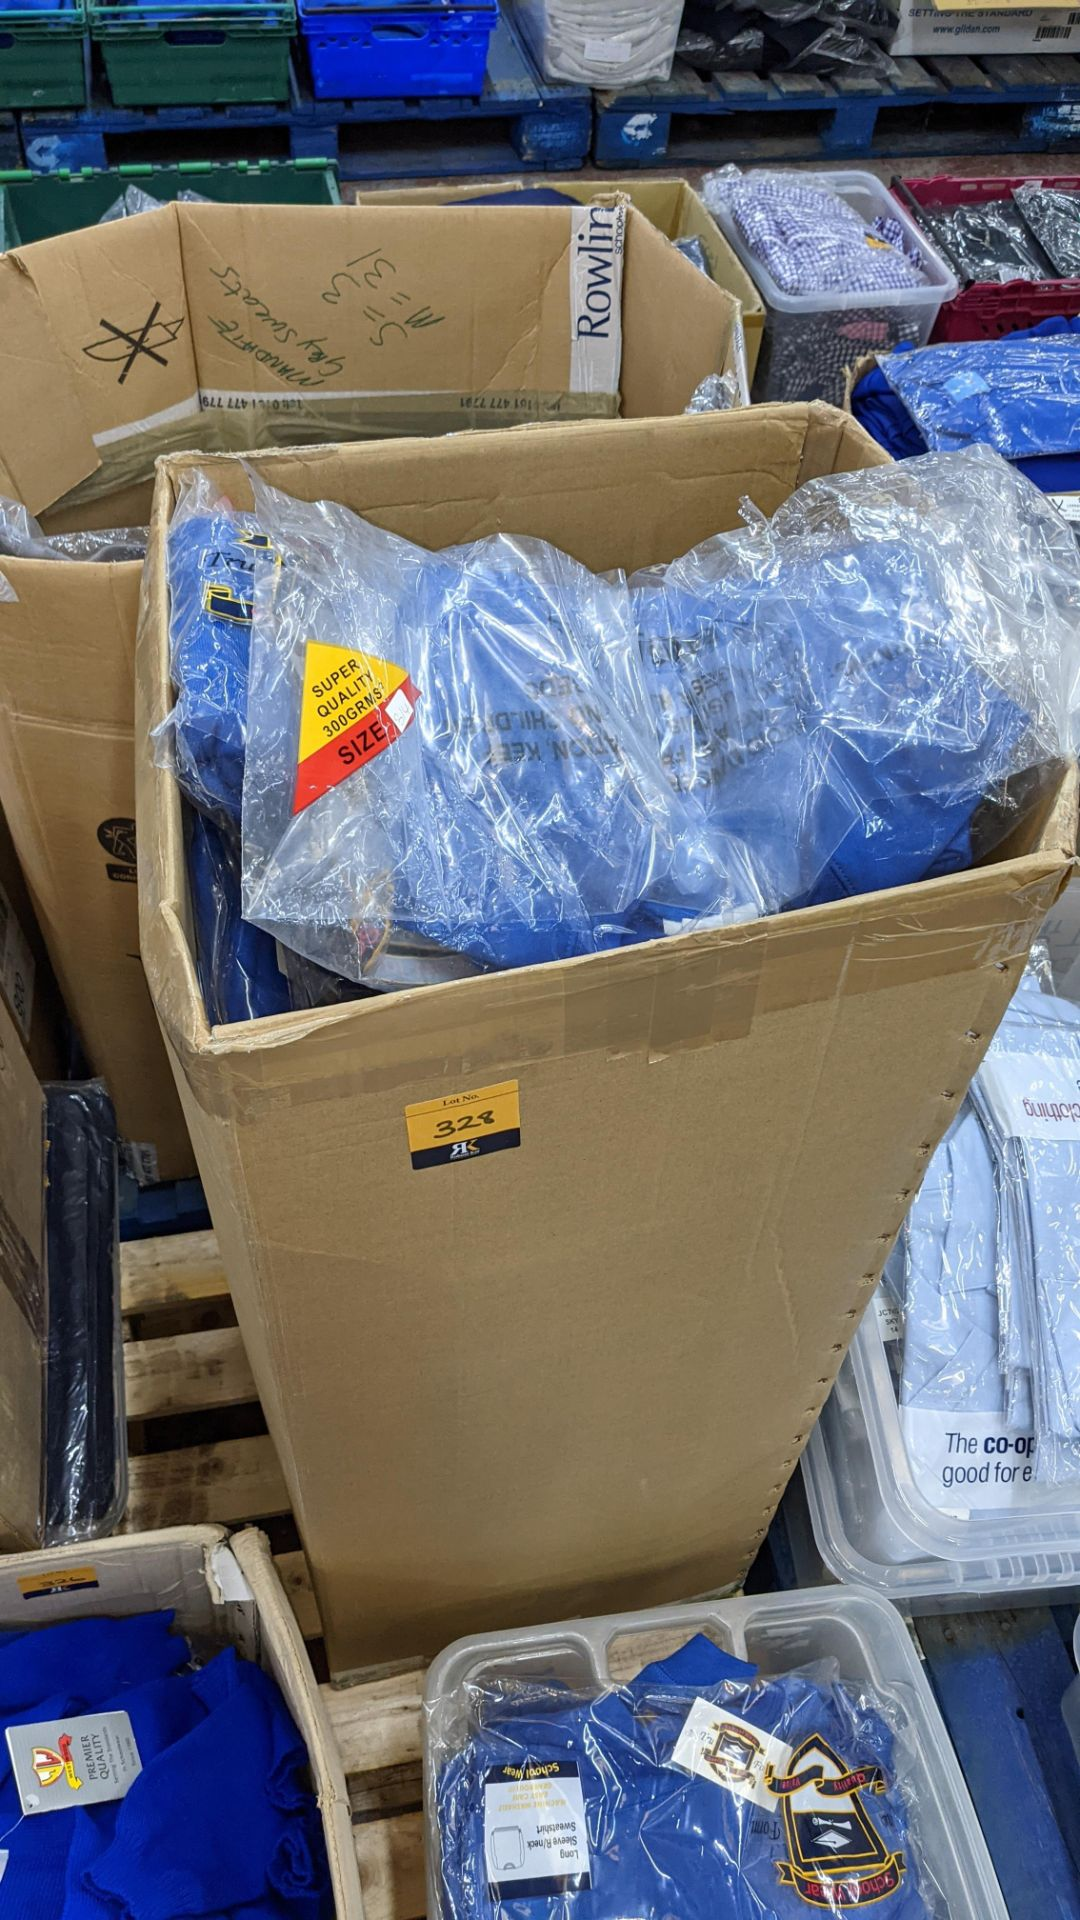 Approx 63 off blue children's sweatshirts - the contents of 1 tall box - Image 2 of 5